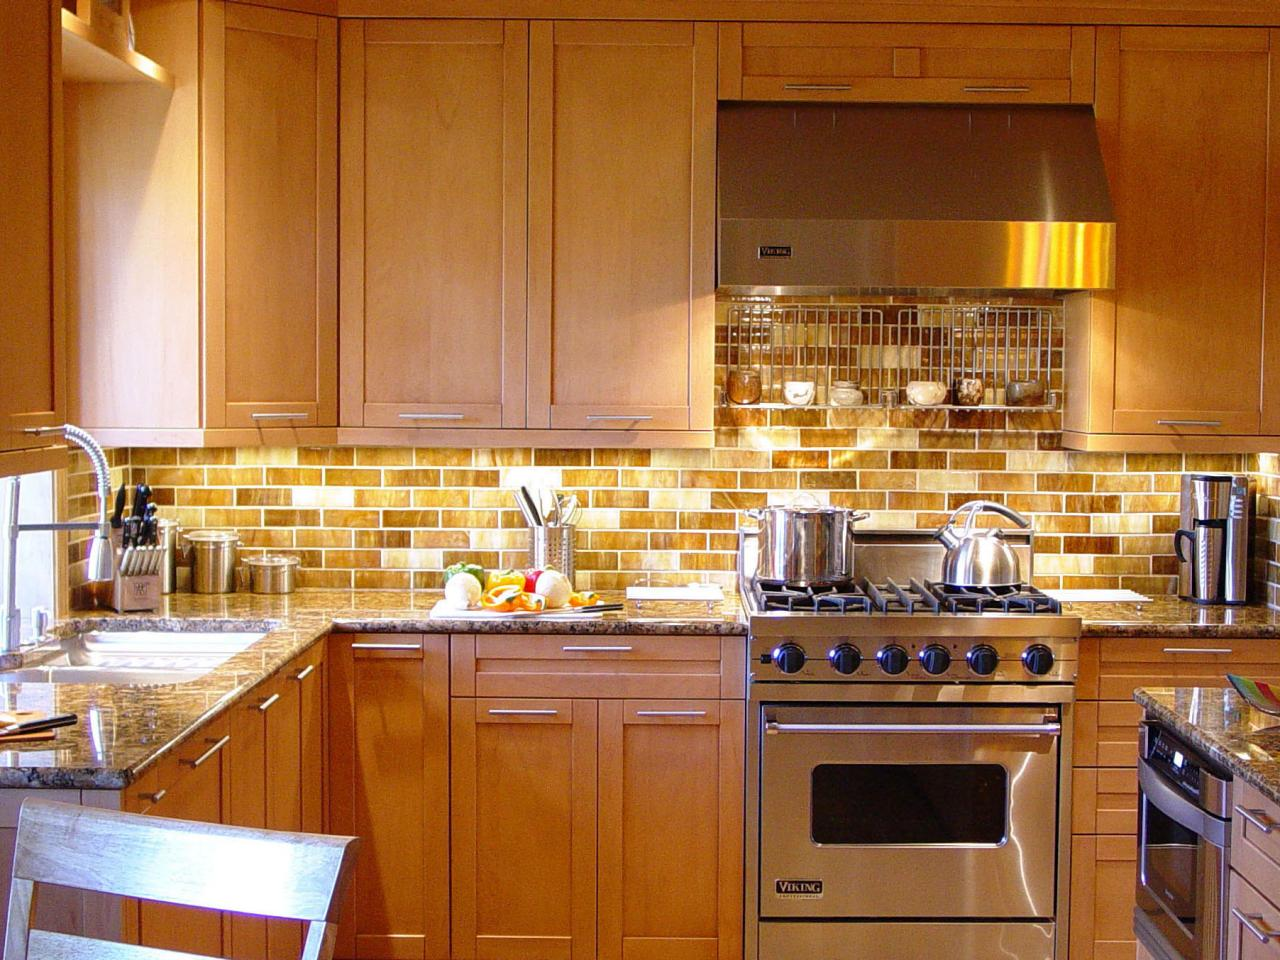 Glass tile backsplashes kitchen designs choose kitchen layouts remodeling materials hgtv Design kitchen backsplash glass tiles